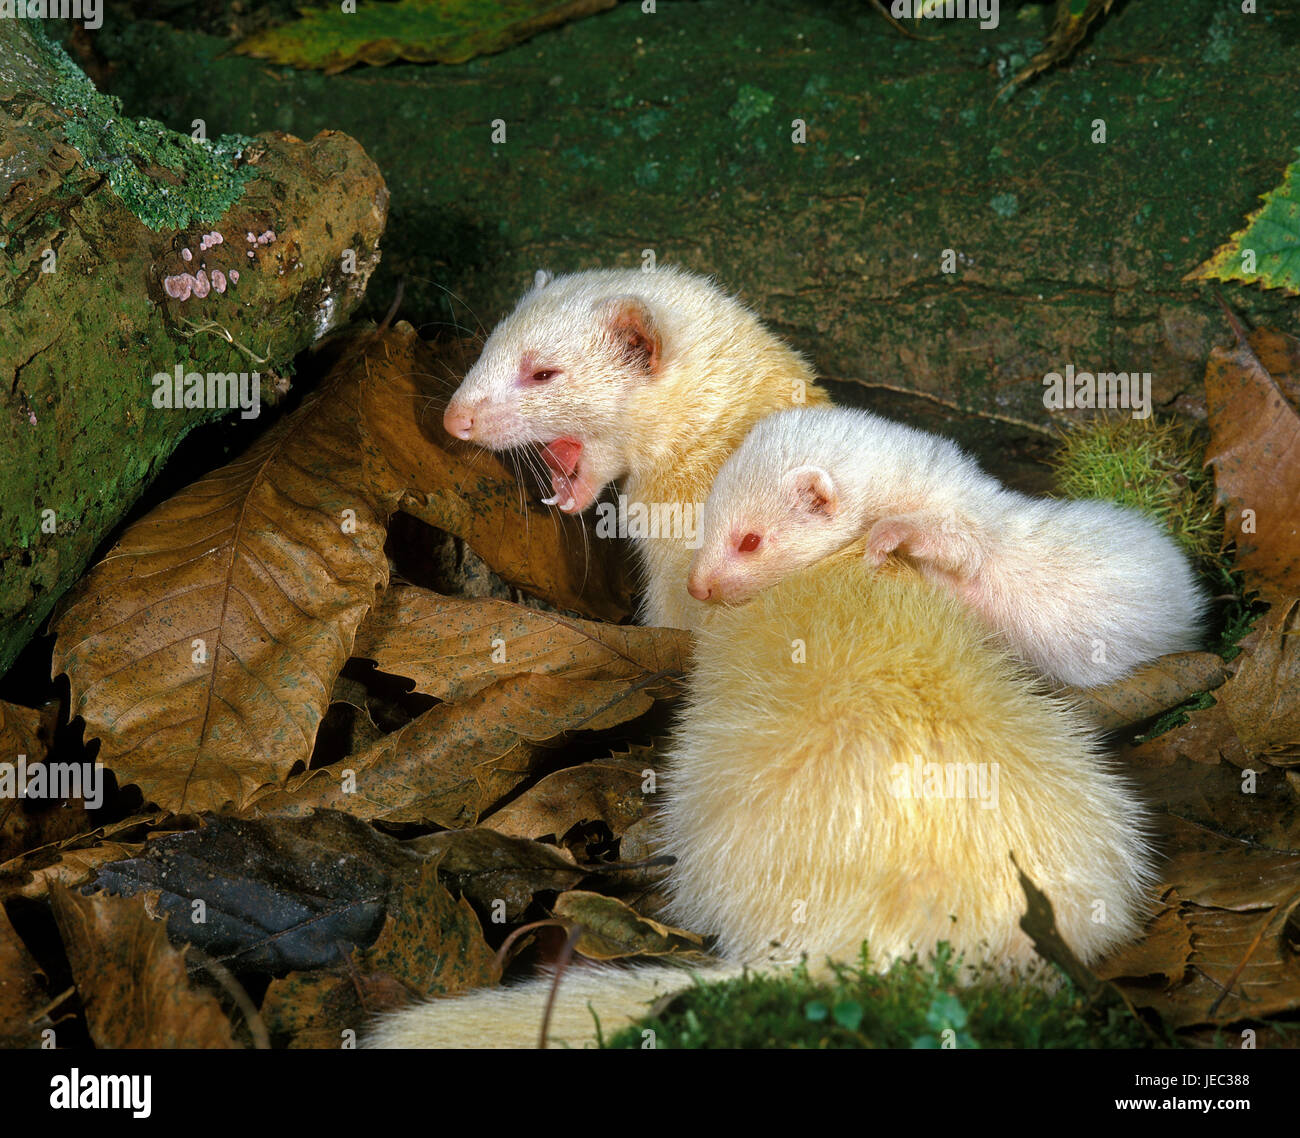 Ferrets, Mustela putorius furo, mother animal with young animal, Stock Photo